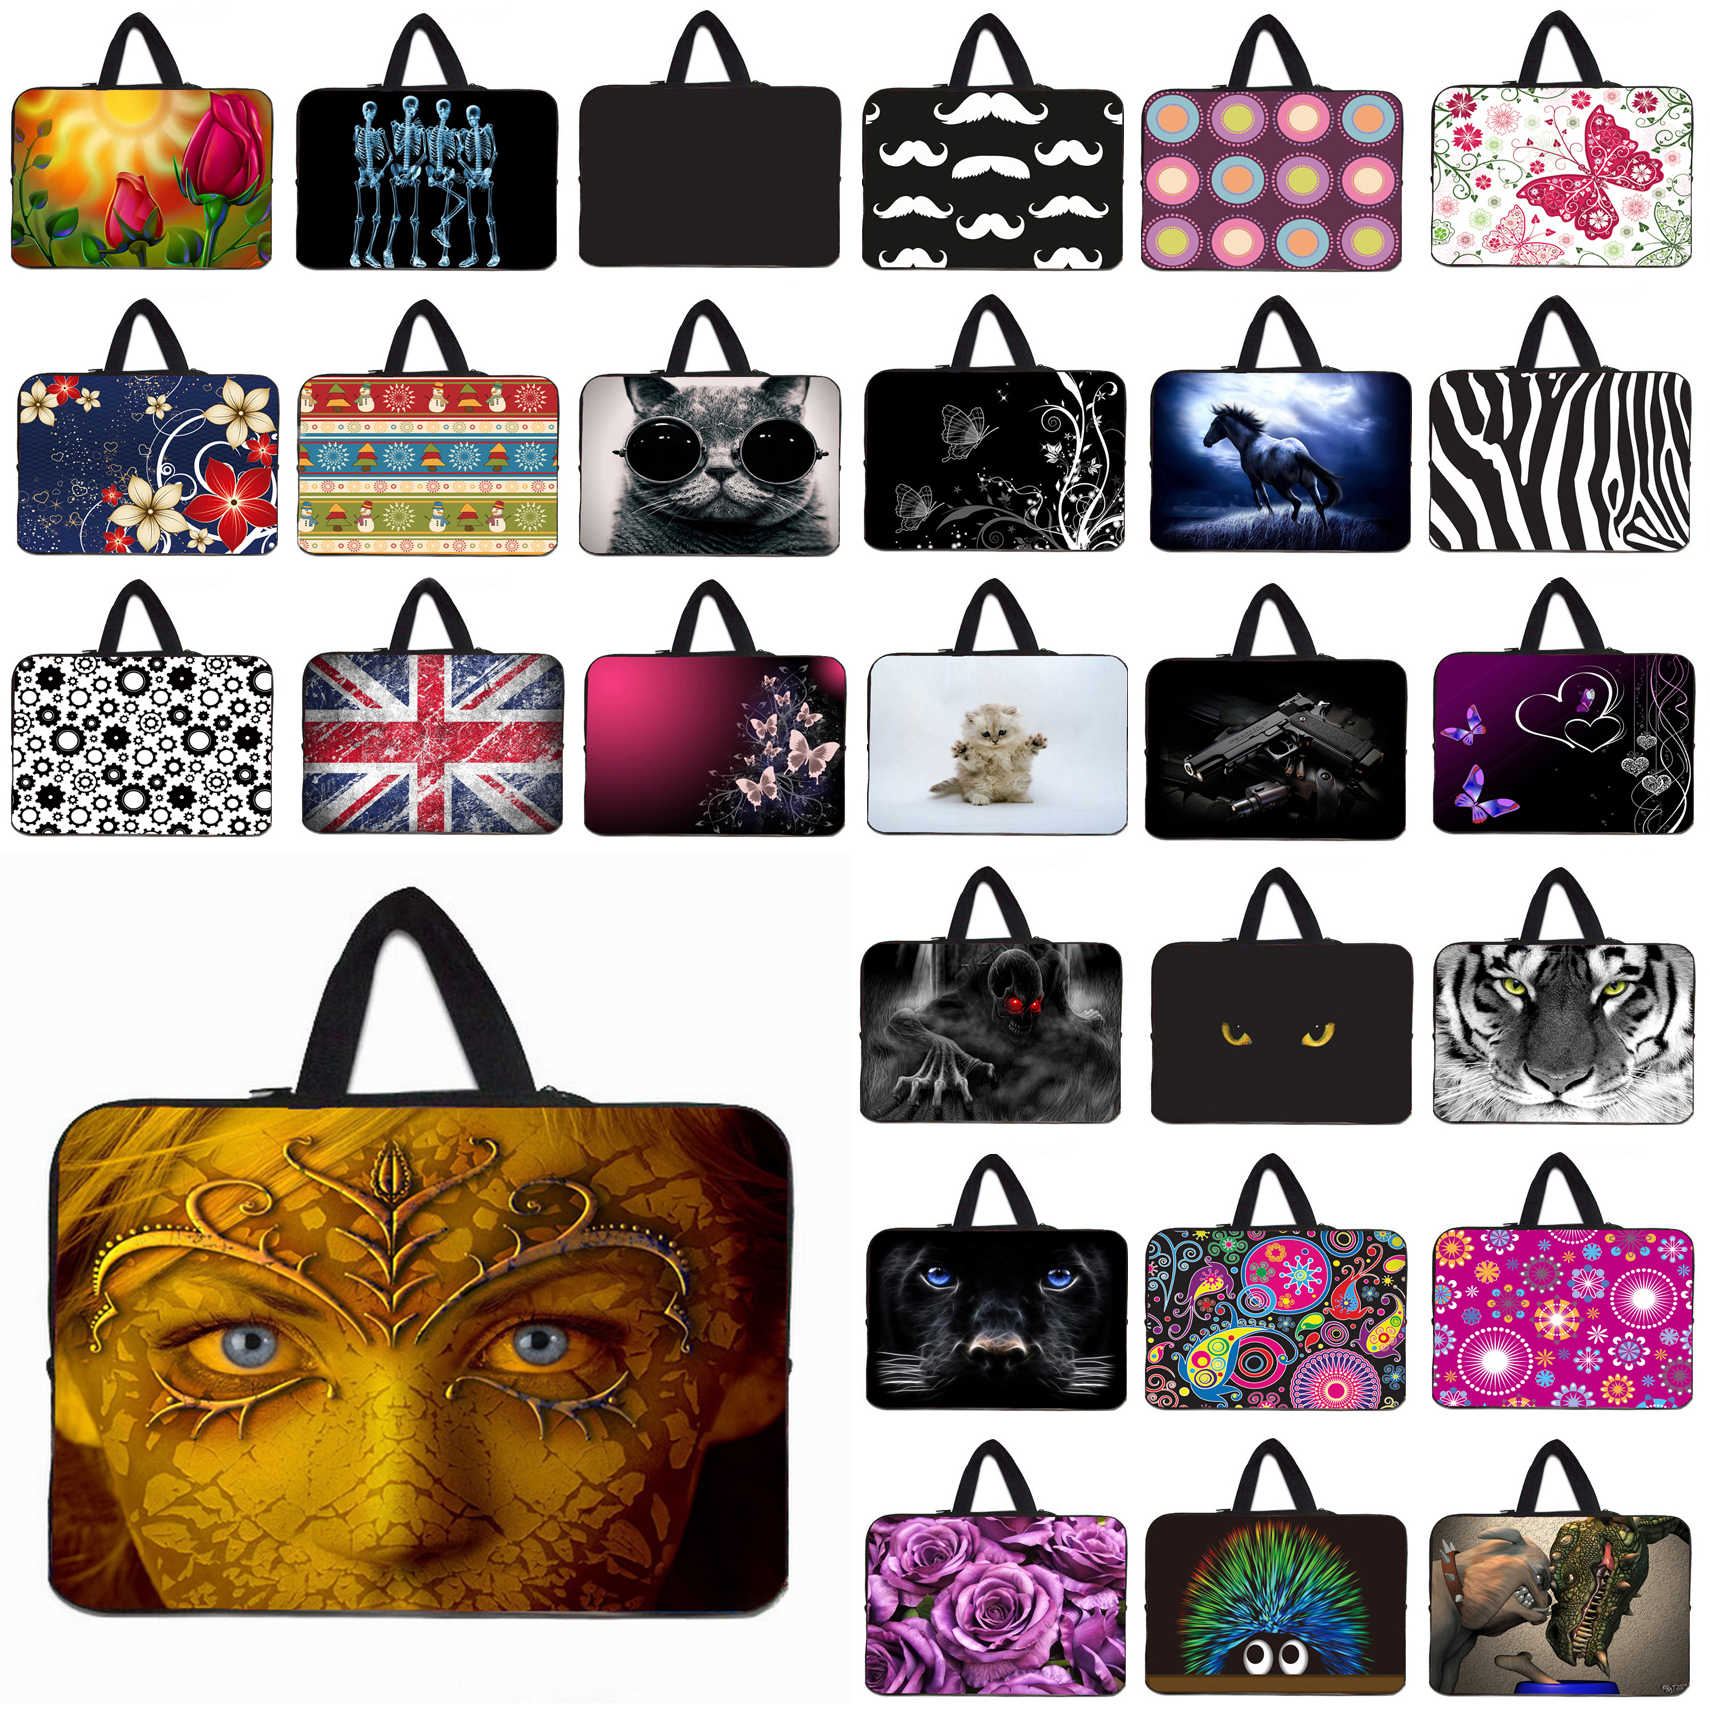 d2b493aac7 Notebook Shell Case Bags For Apple Chuwi Lenovo HP 9.7 10 12 13.3 14 15 15.6